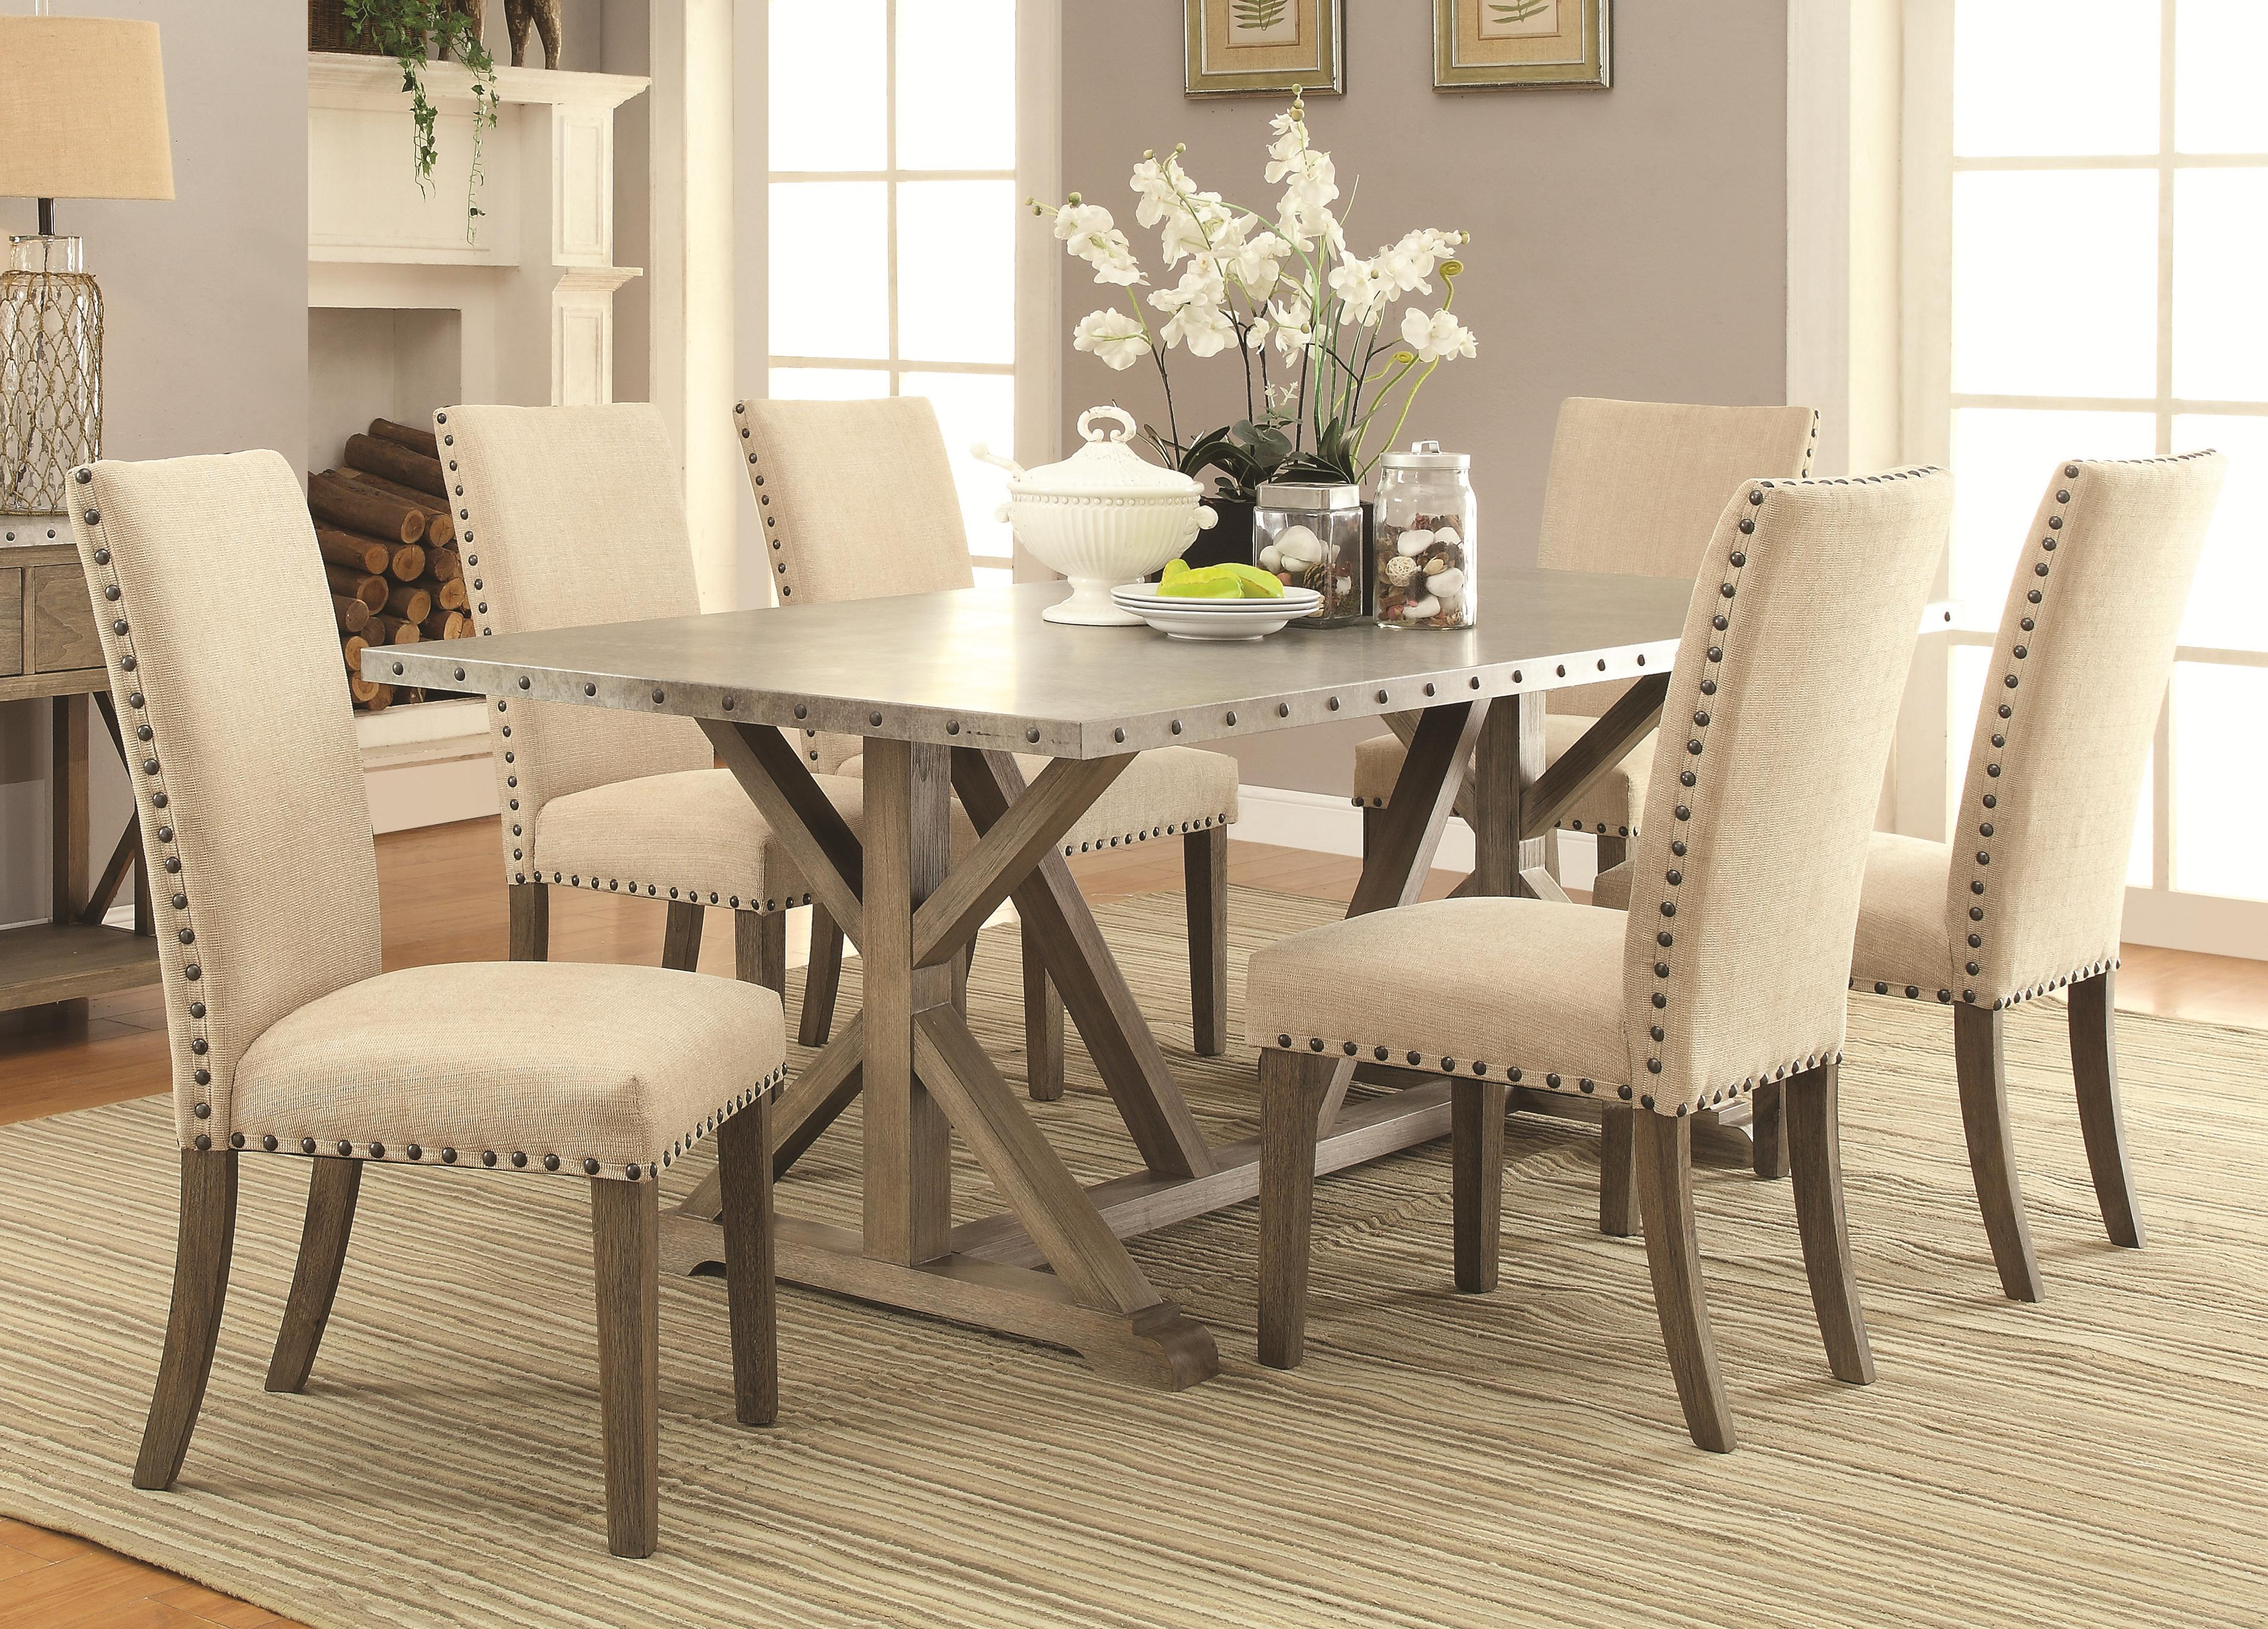 bloomfield 5 piece dining set w beige chairs bana home decors arcadia industrial 6 piece table chair set with bench